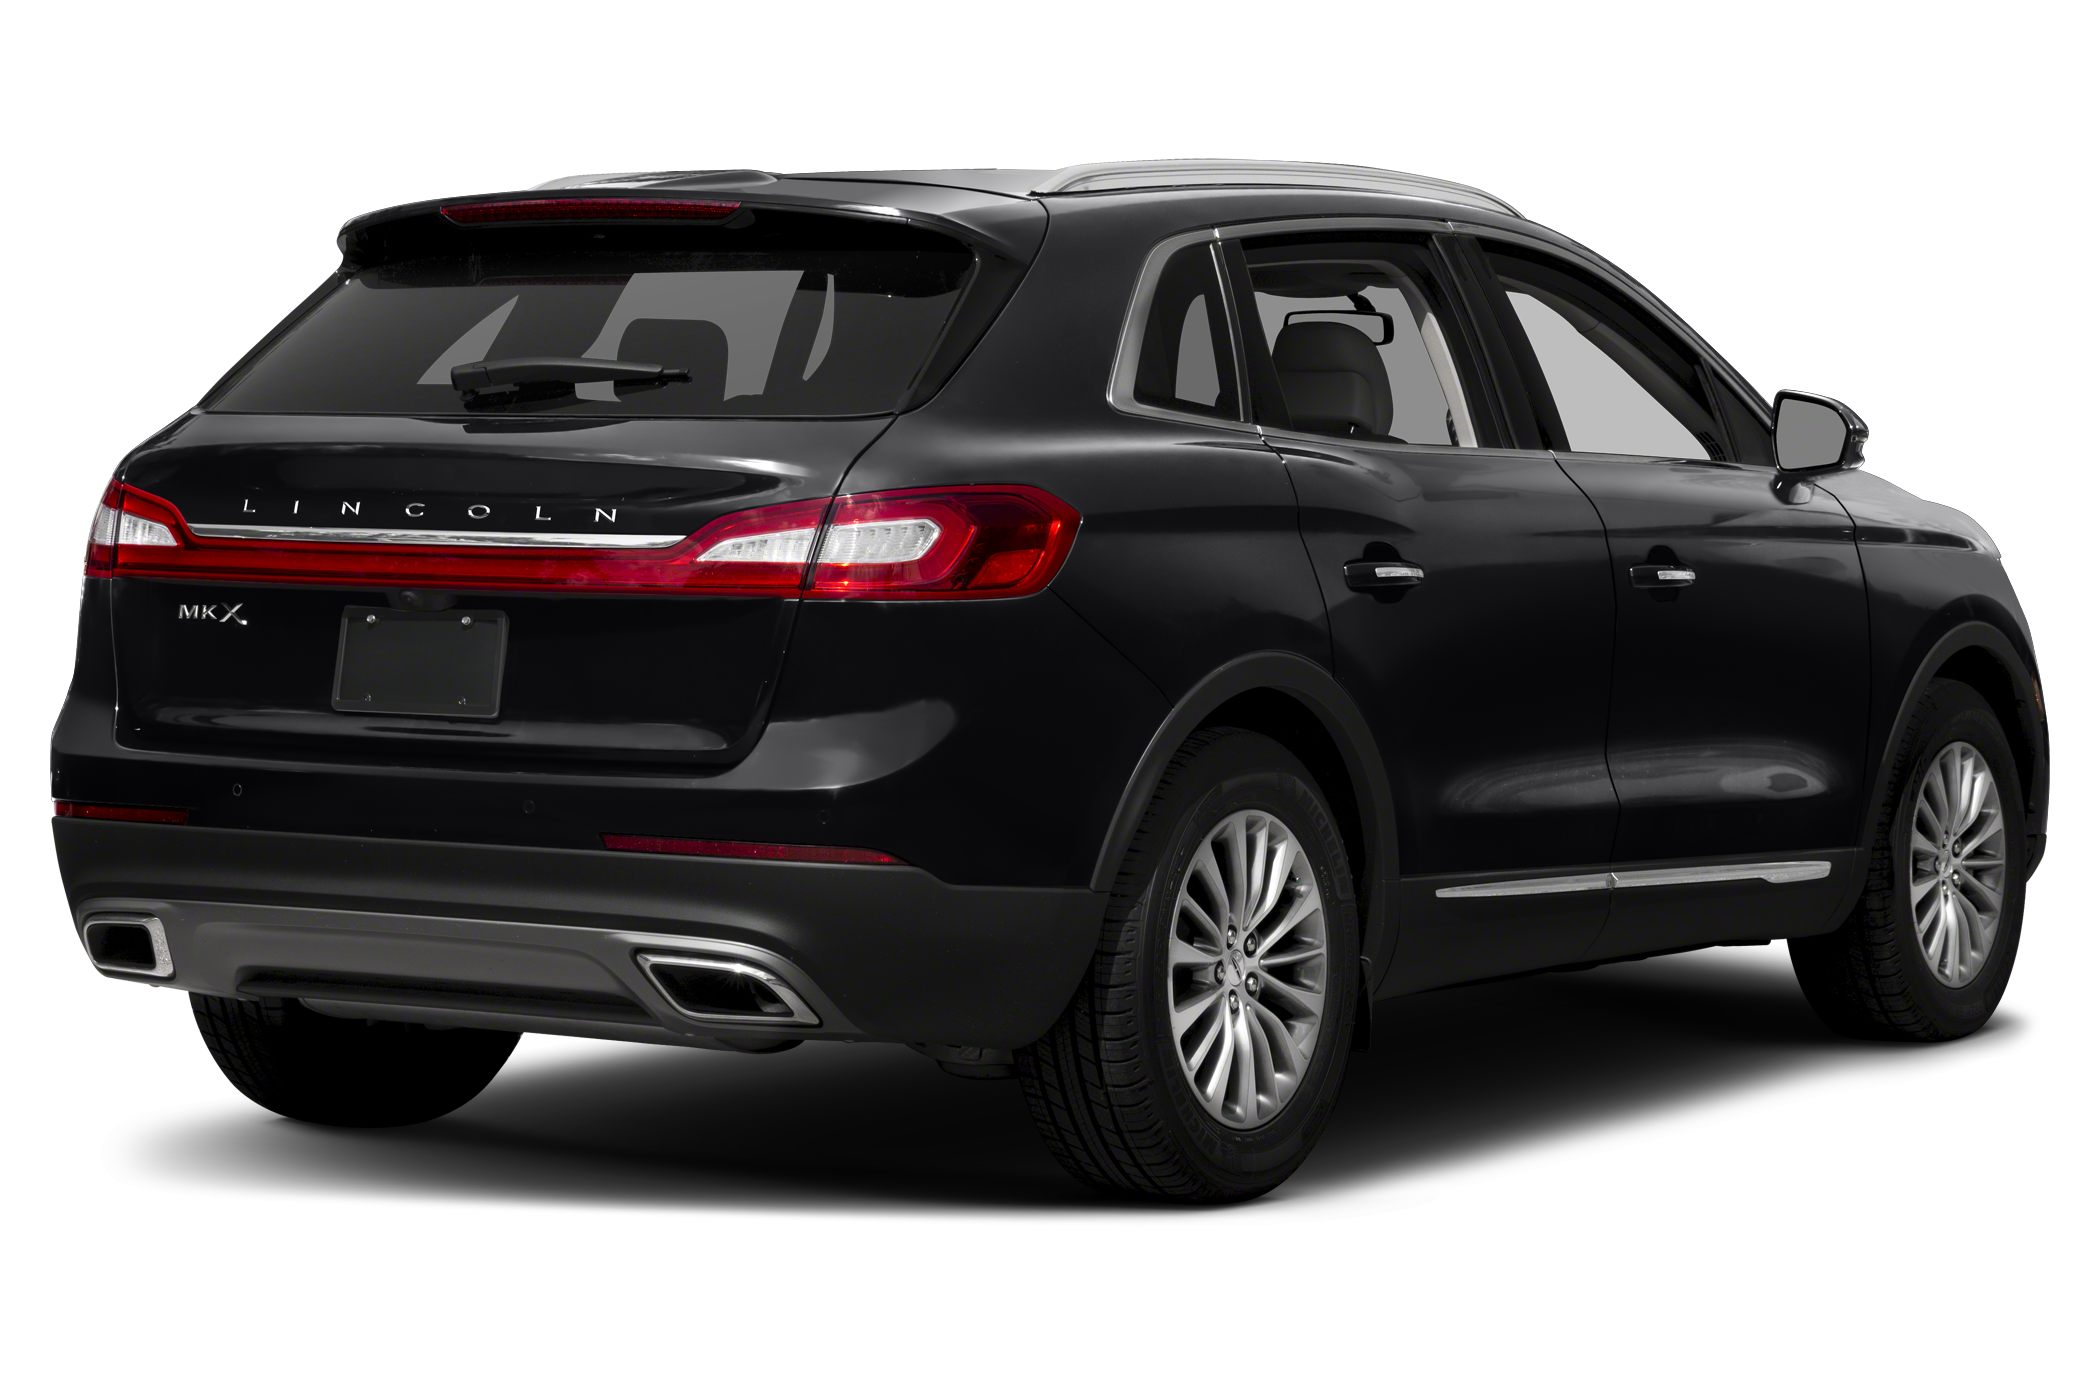 Lincoln Mkx Lease >> 2018 Lincoln MKX Pictures & Photos - CarsDirect